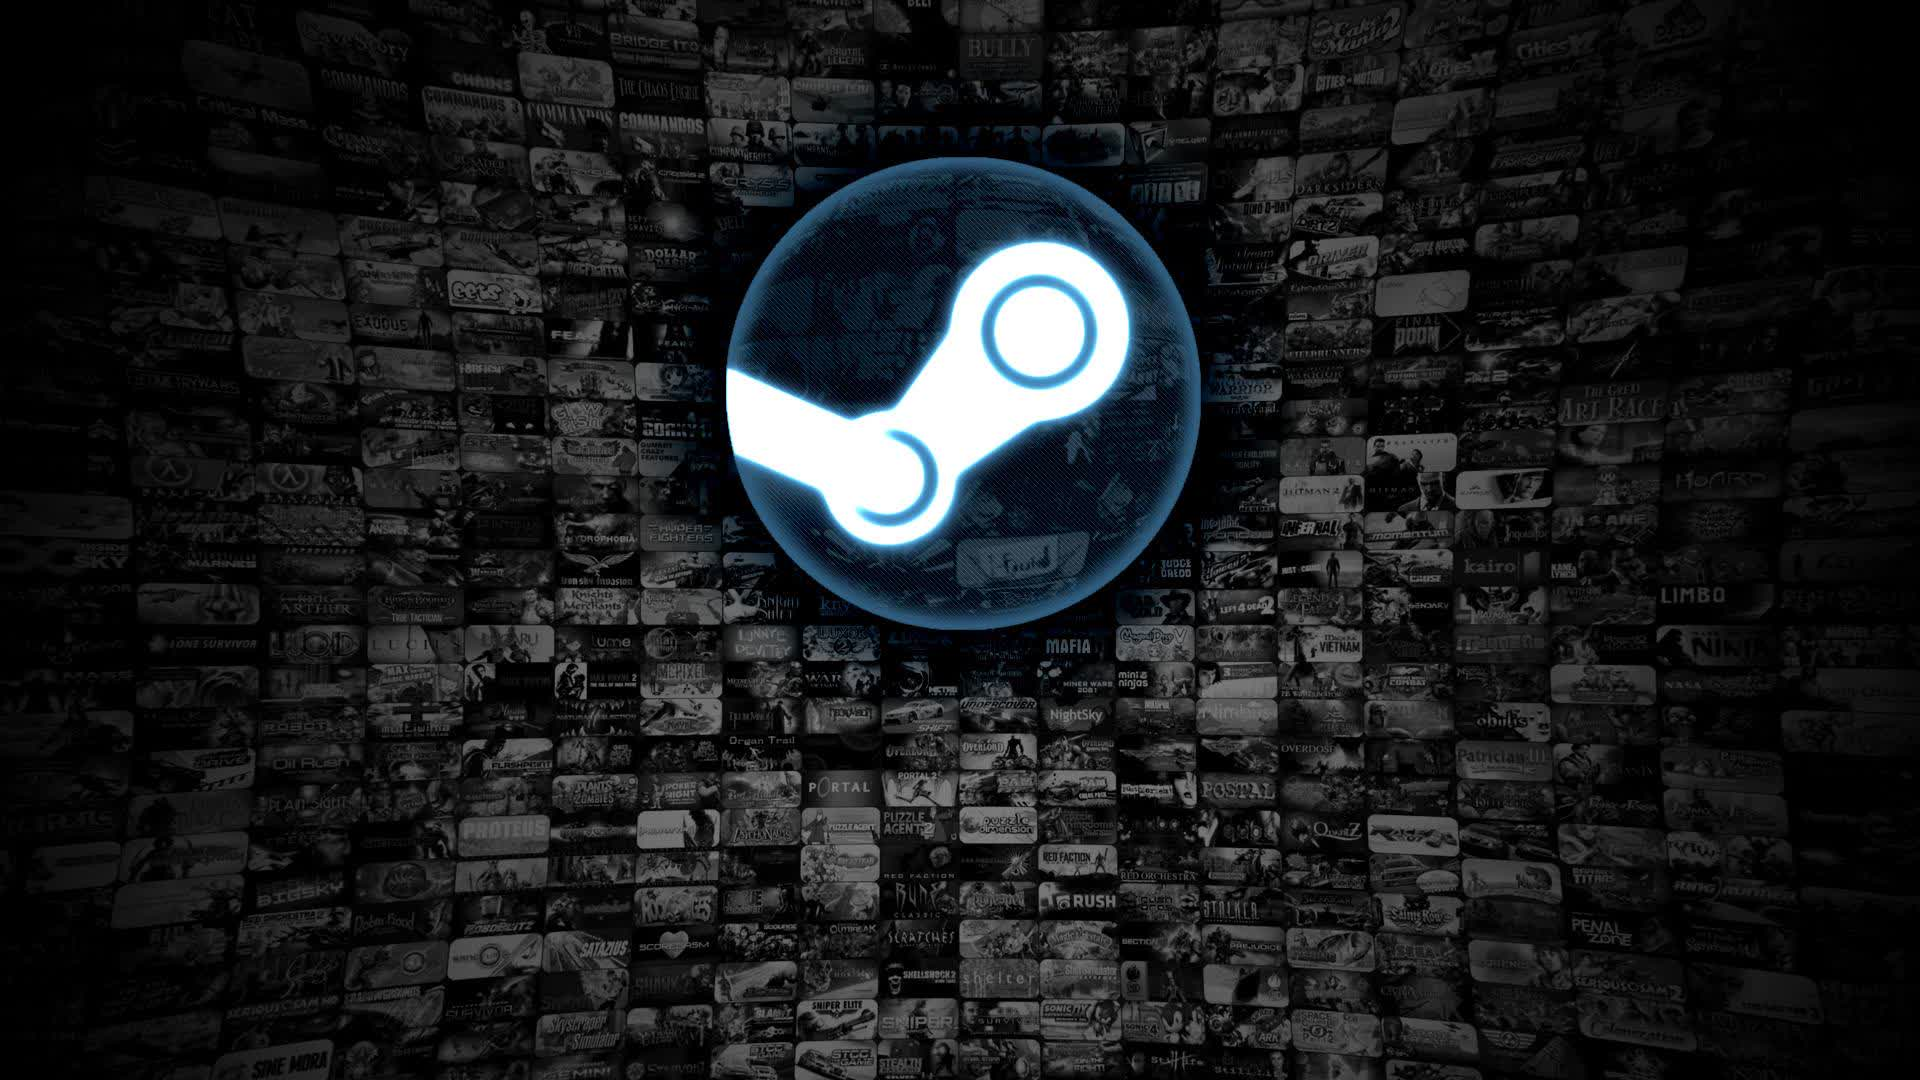 District court judge orders Valve to hand over Steam sales data to Apple